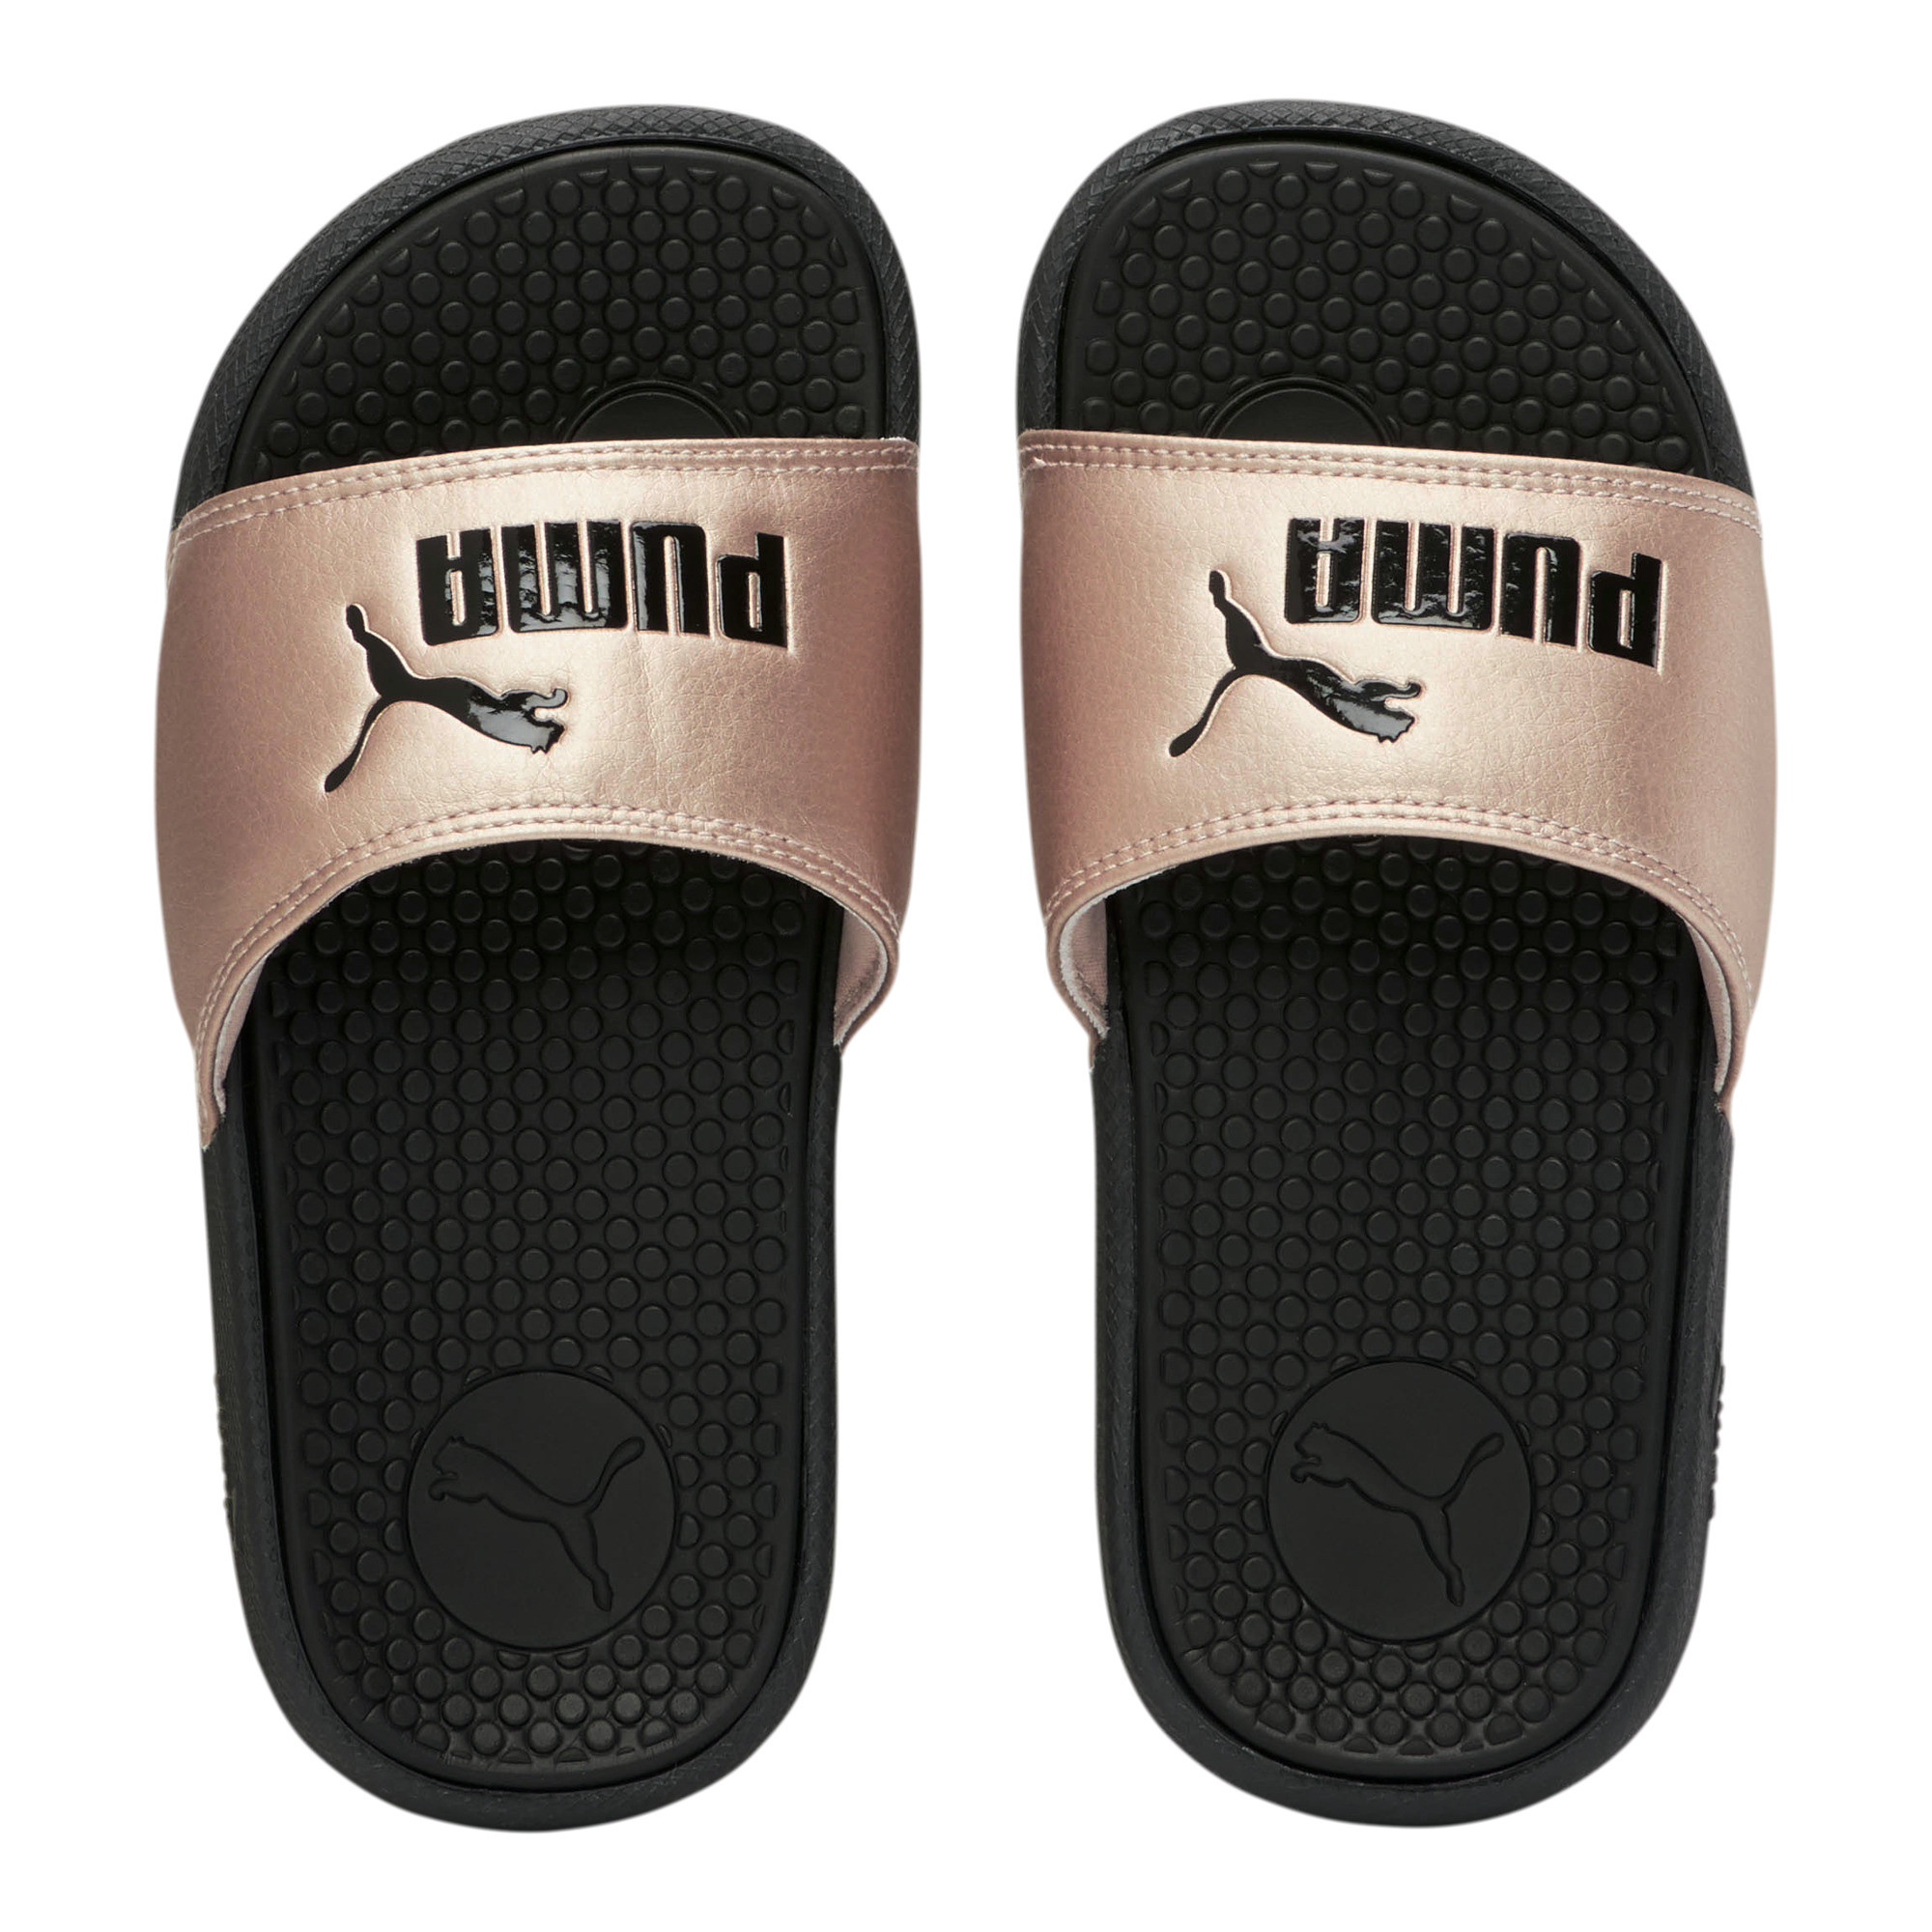 PUMA-Pre-School-Cool-Cat-Metallic-Little-Slides thumbnail 7